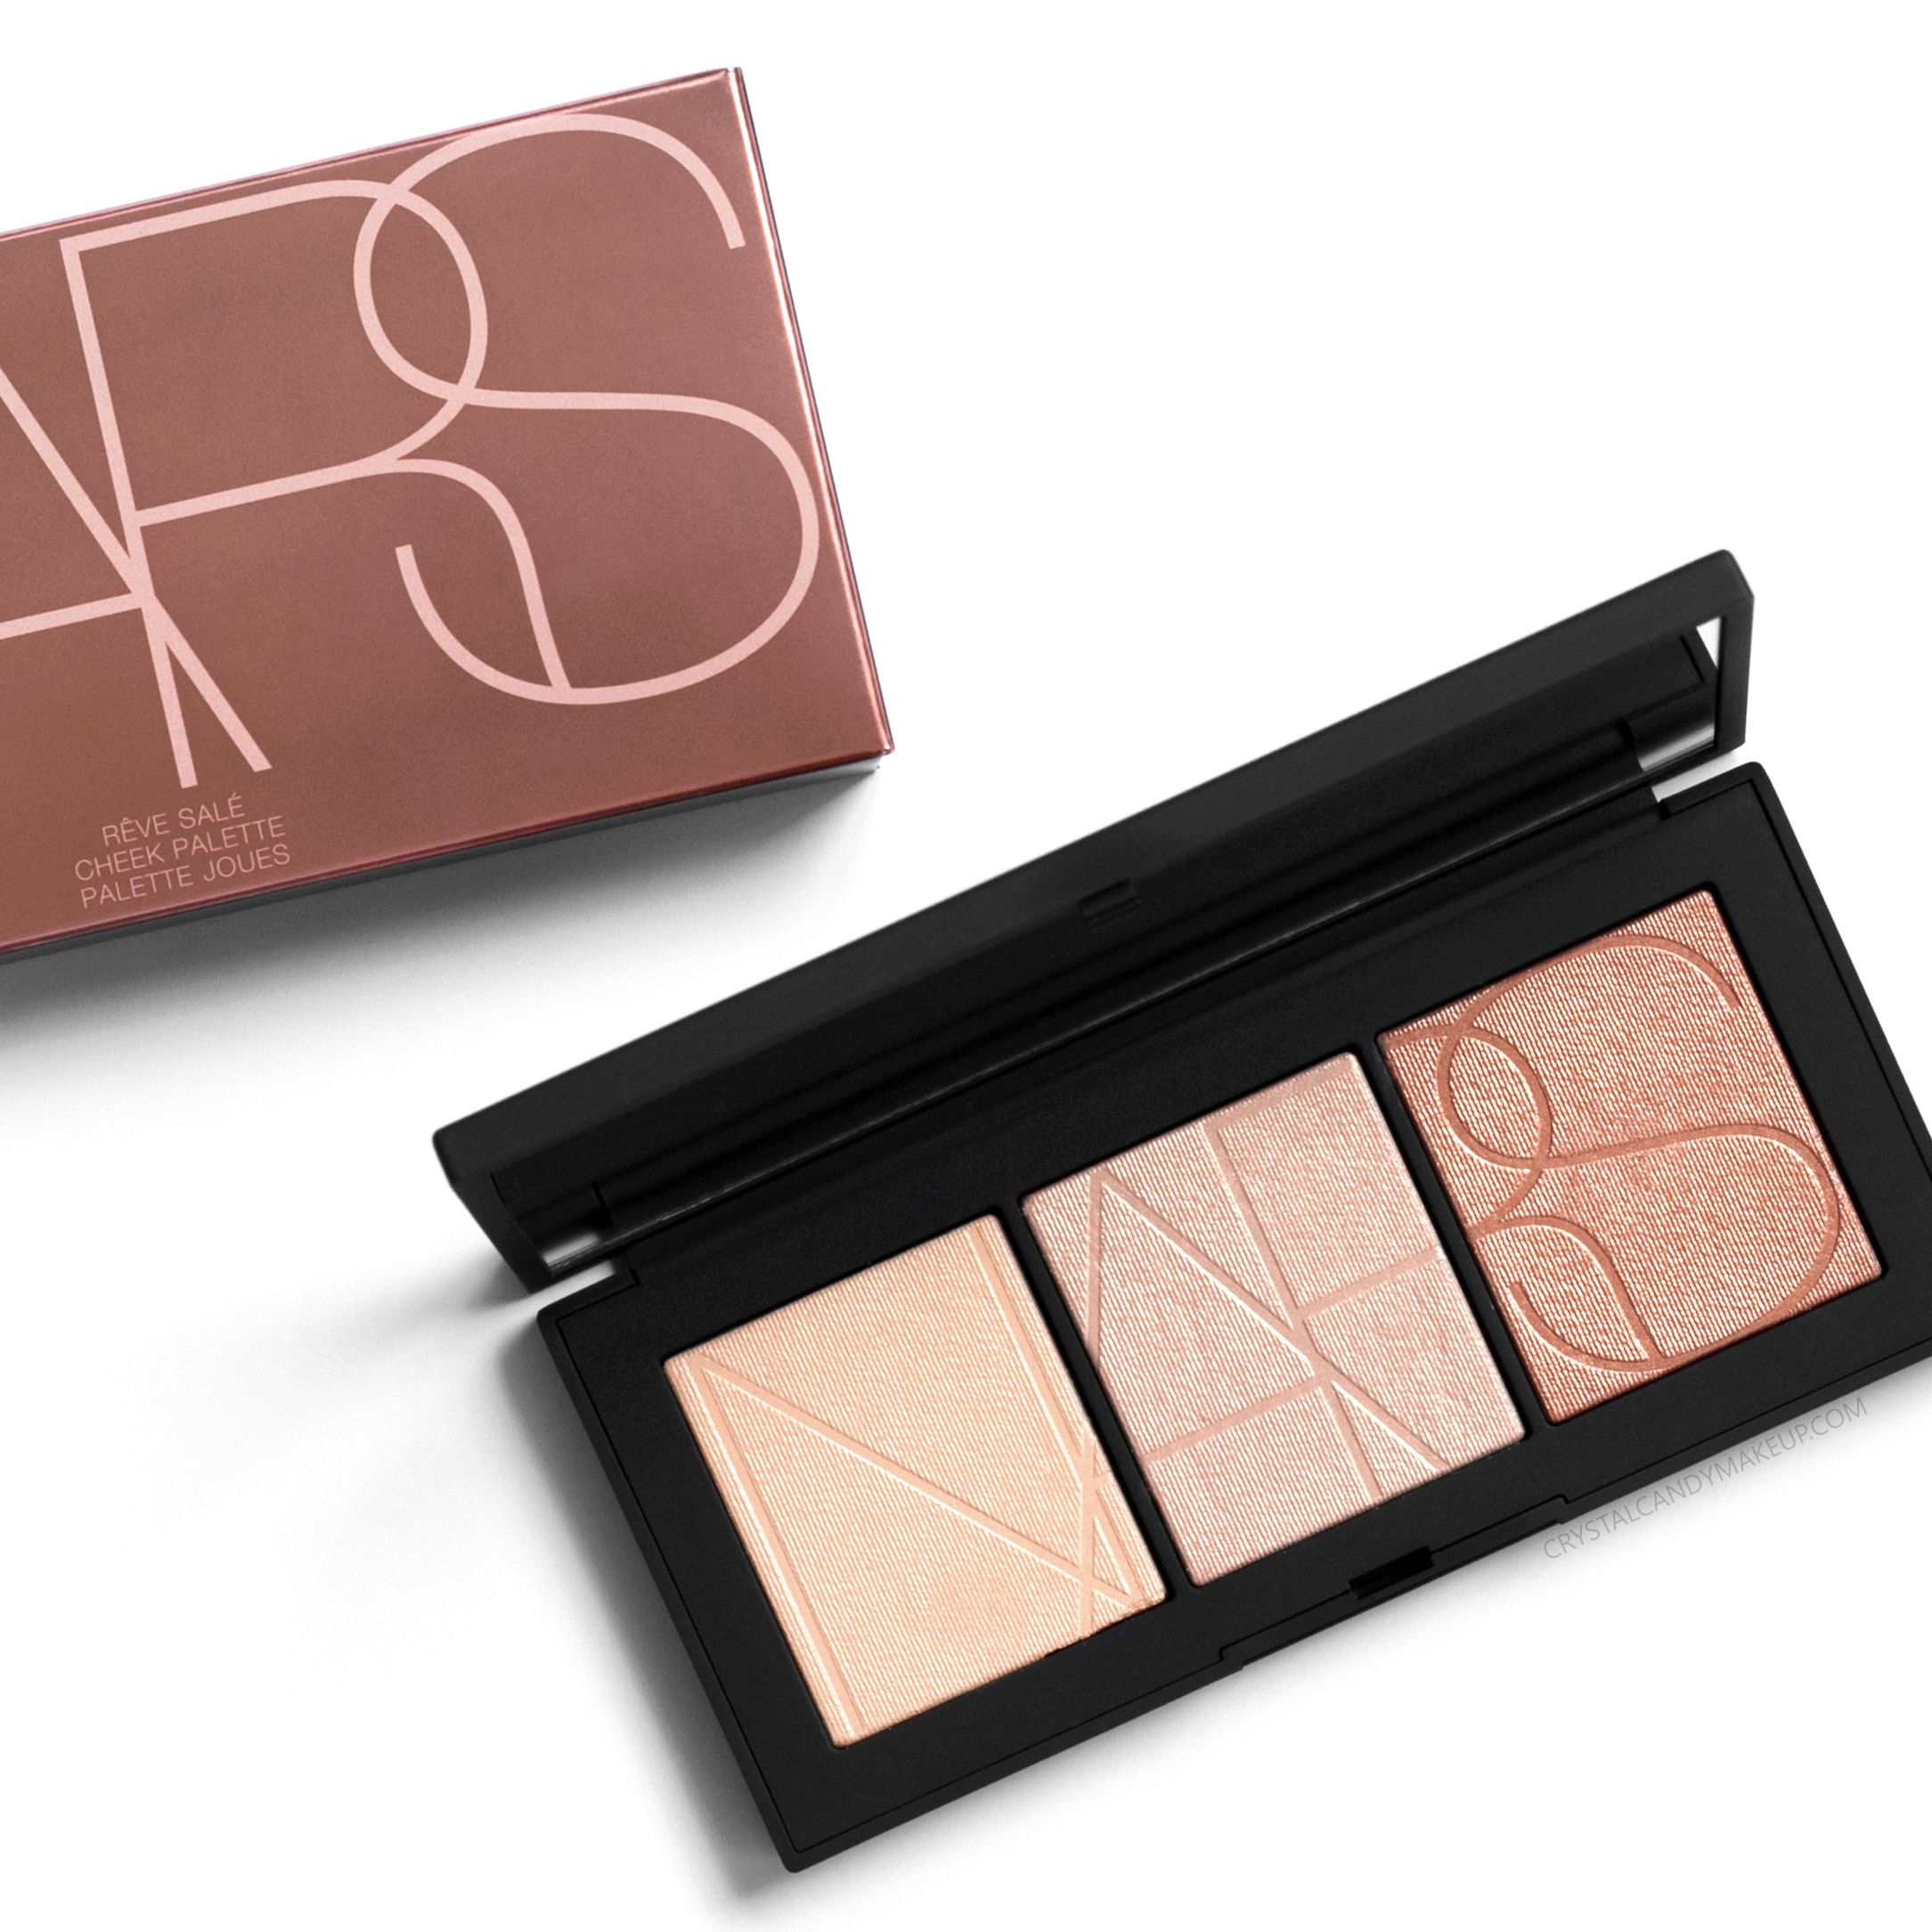 NARS Rêve Salé Cheek Palette - Review and Swatches